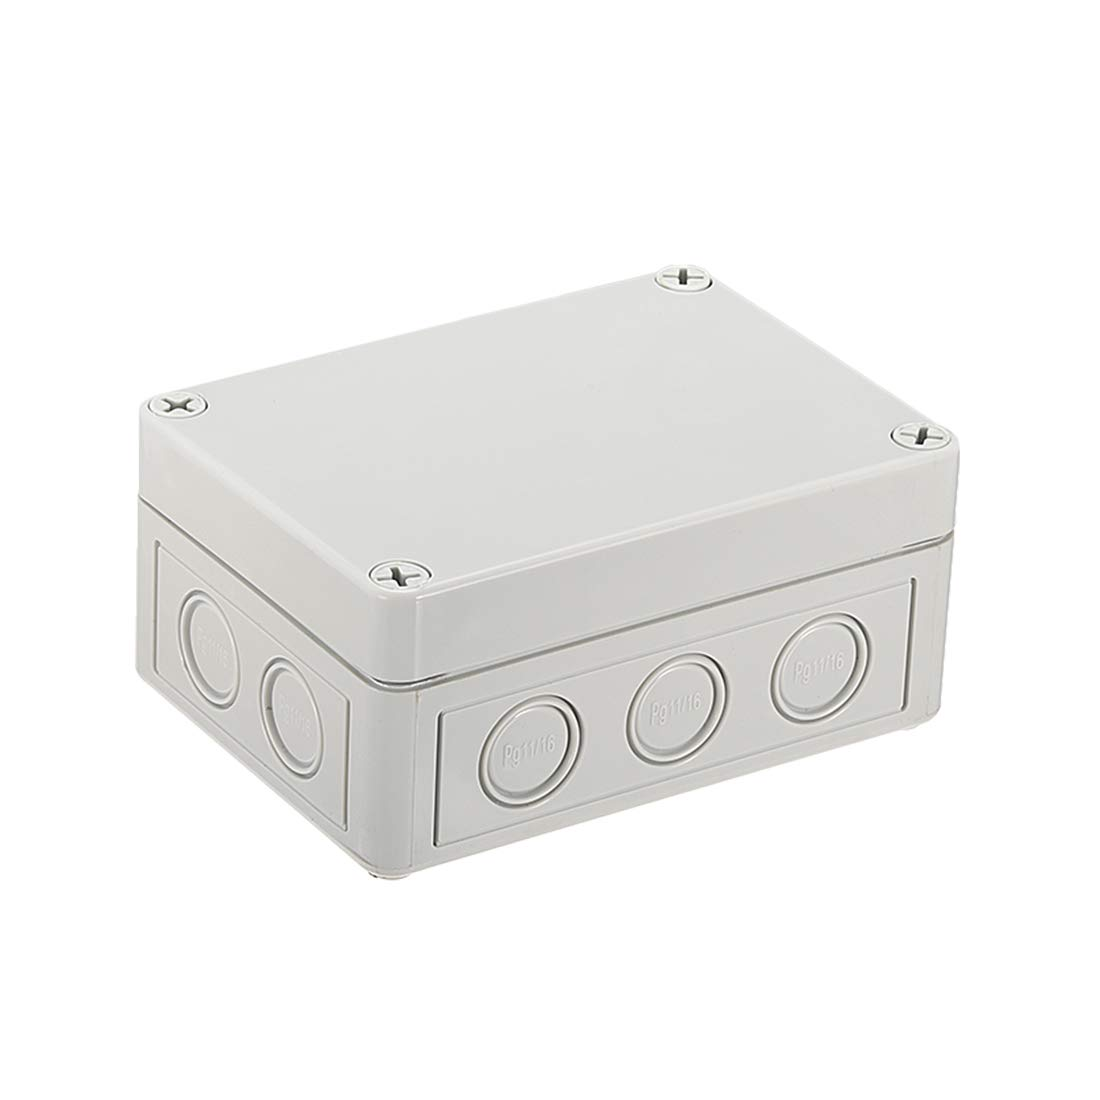 uxcell 130mmx94mmx61mm(5.1''x3.7''x2.4'') ABS Junction Box Universal Electric Project Enclosure